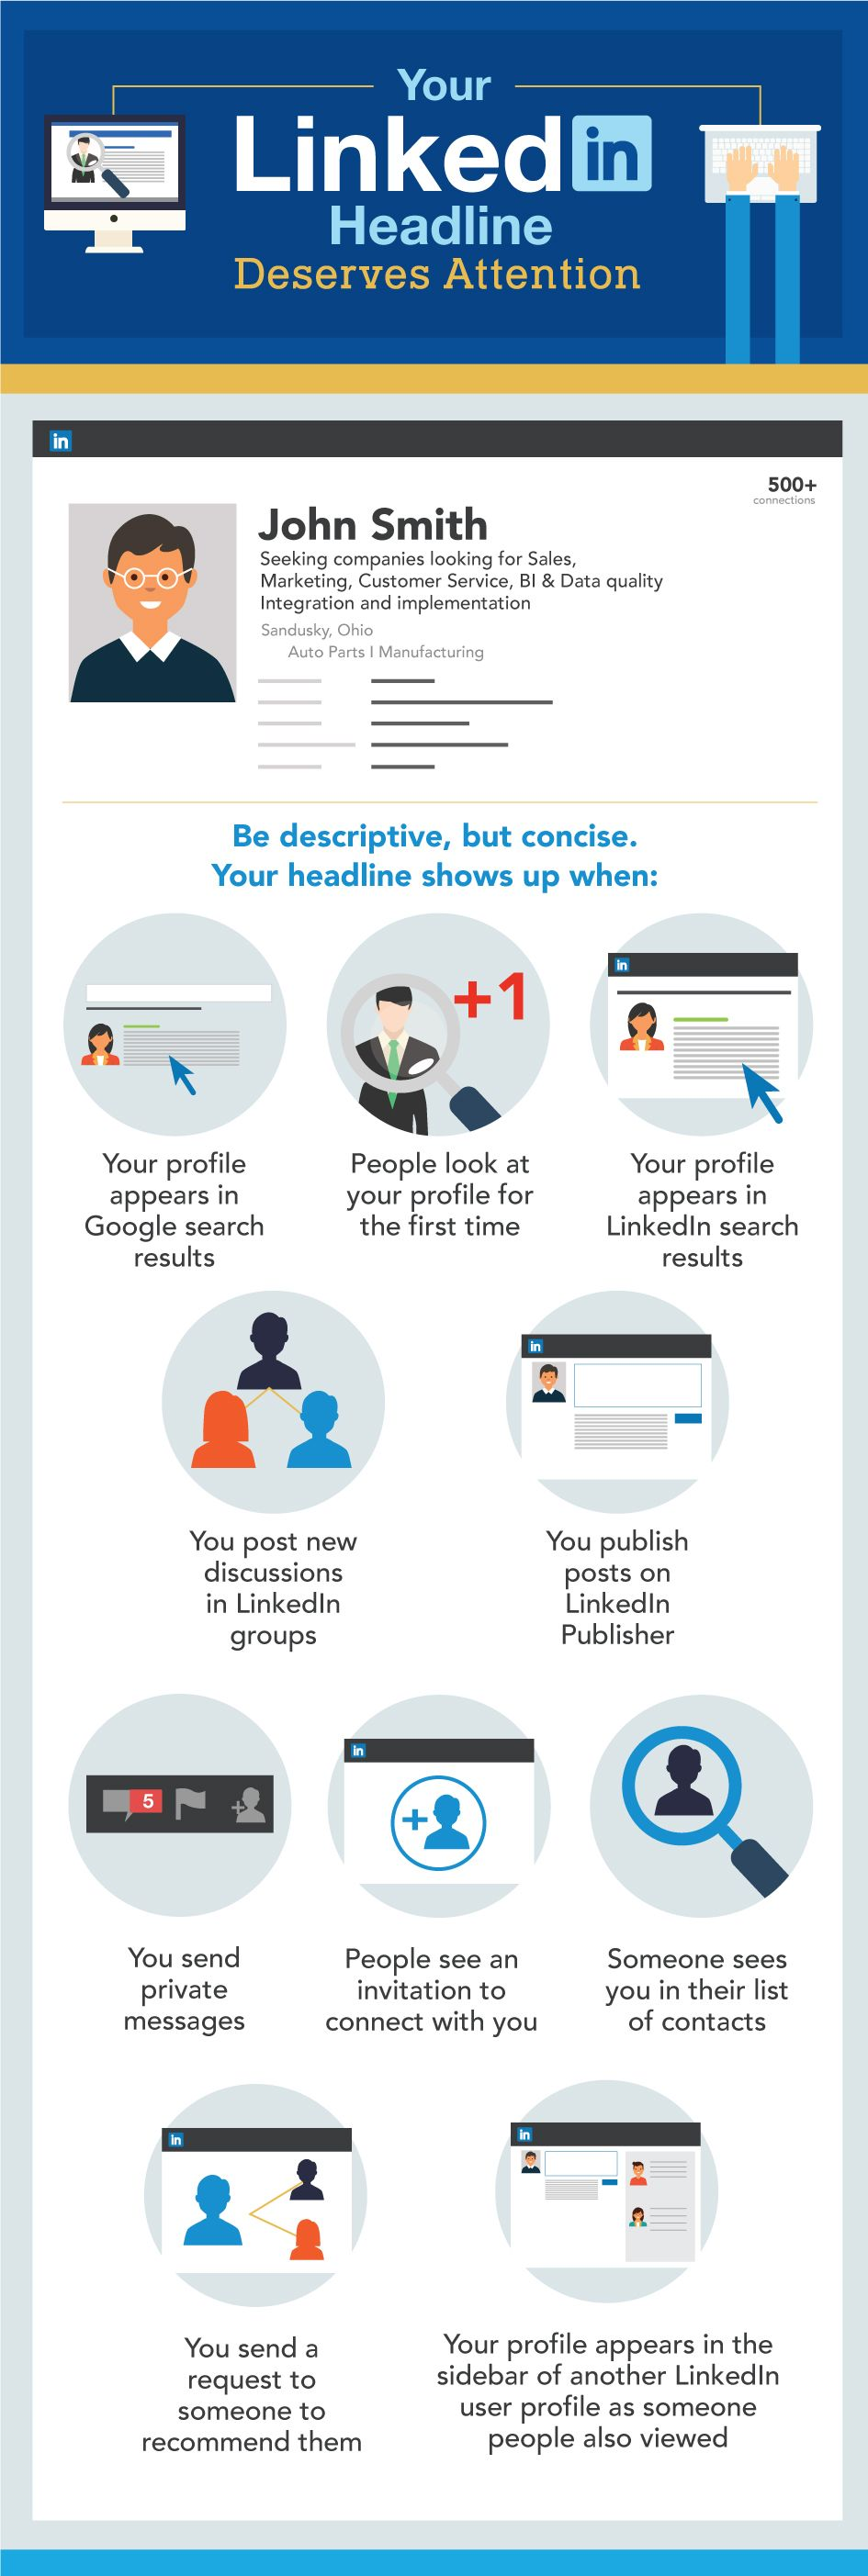 How to Use LinkedIn to Connect With Your Ideal Customers